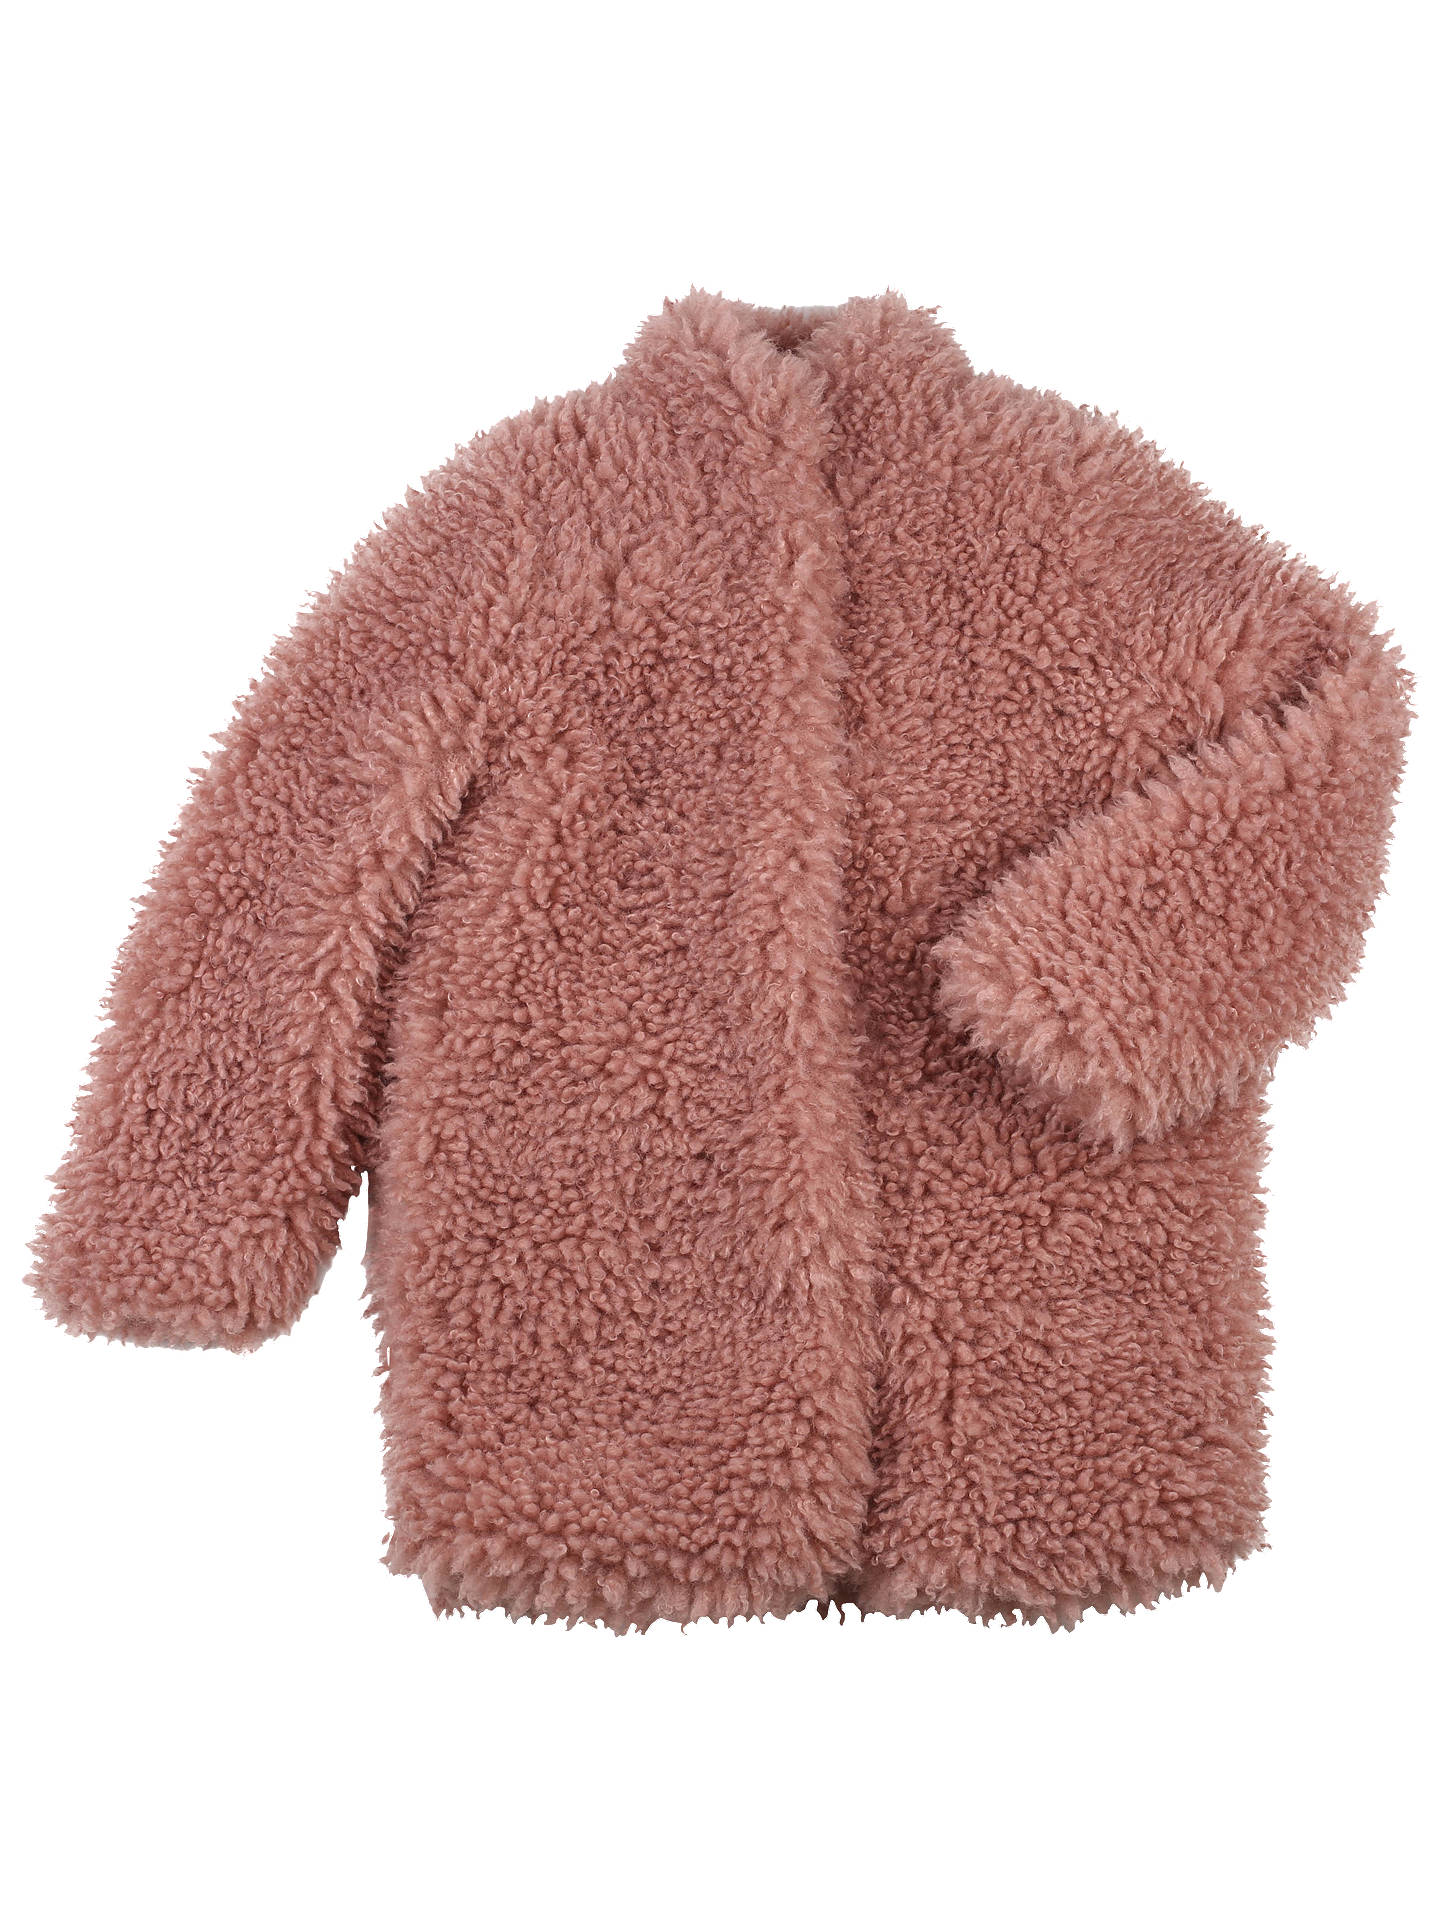 7a4044c469c Outside the Lines Girls' Teddy Faux Fur Coat, Pink at John Lewis ...